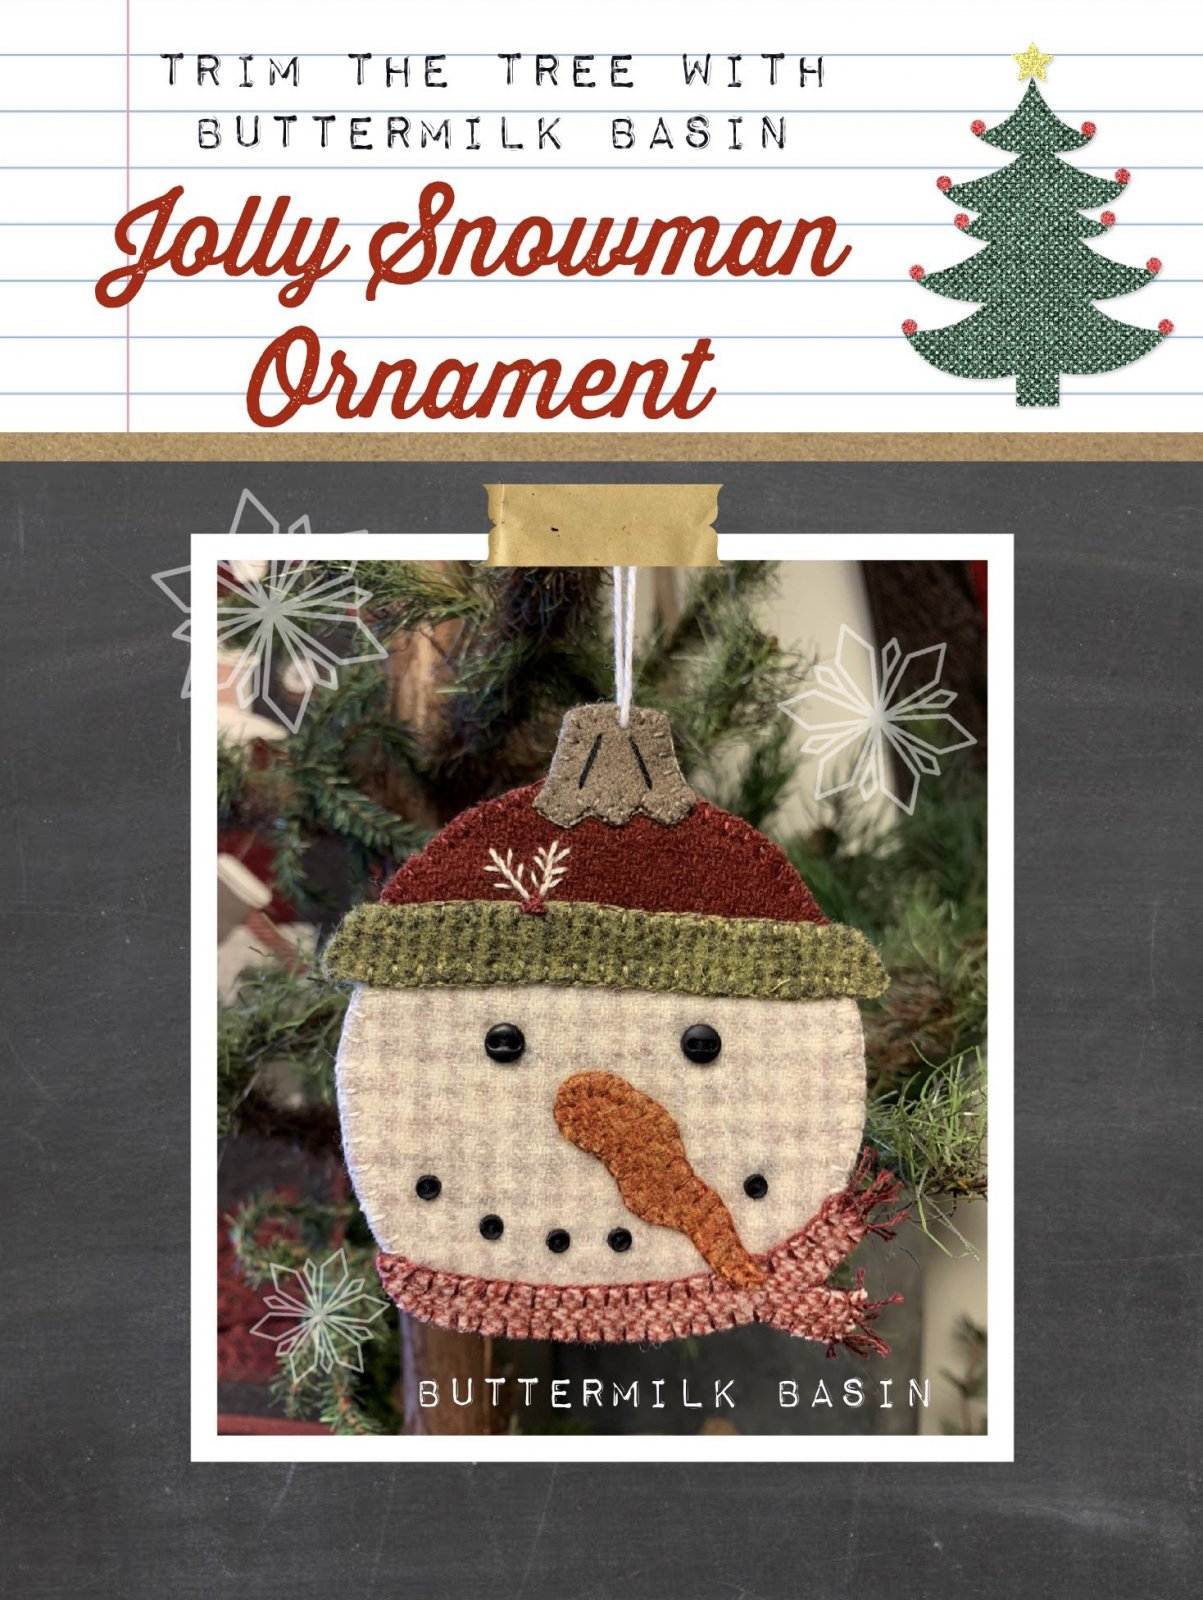 Jolly Snowman Ornament Pattern and Kit